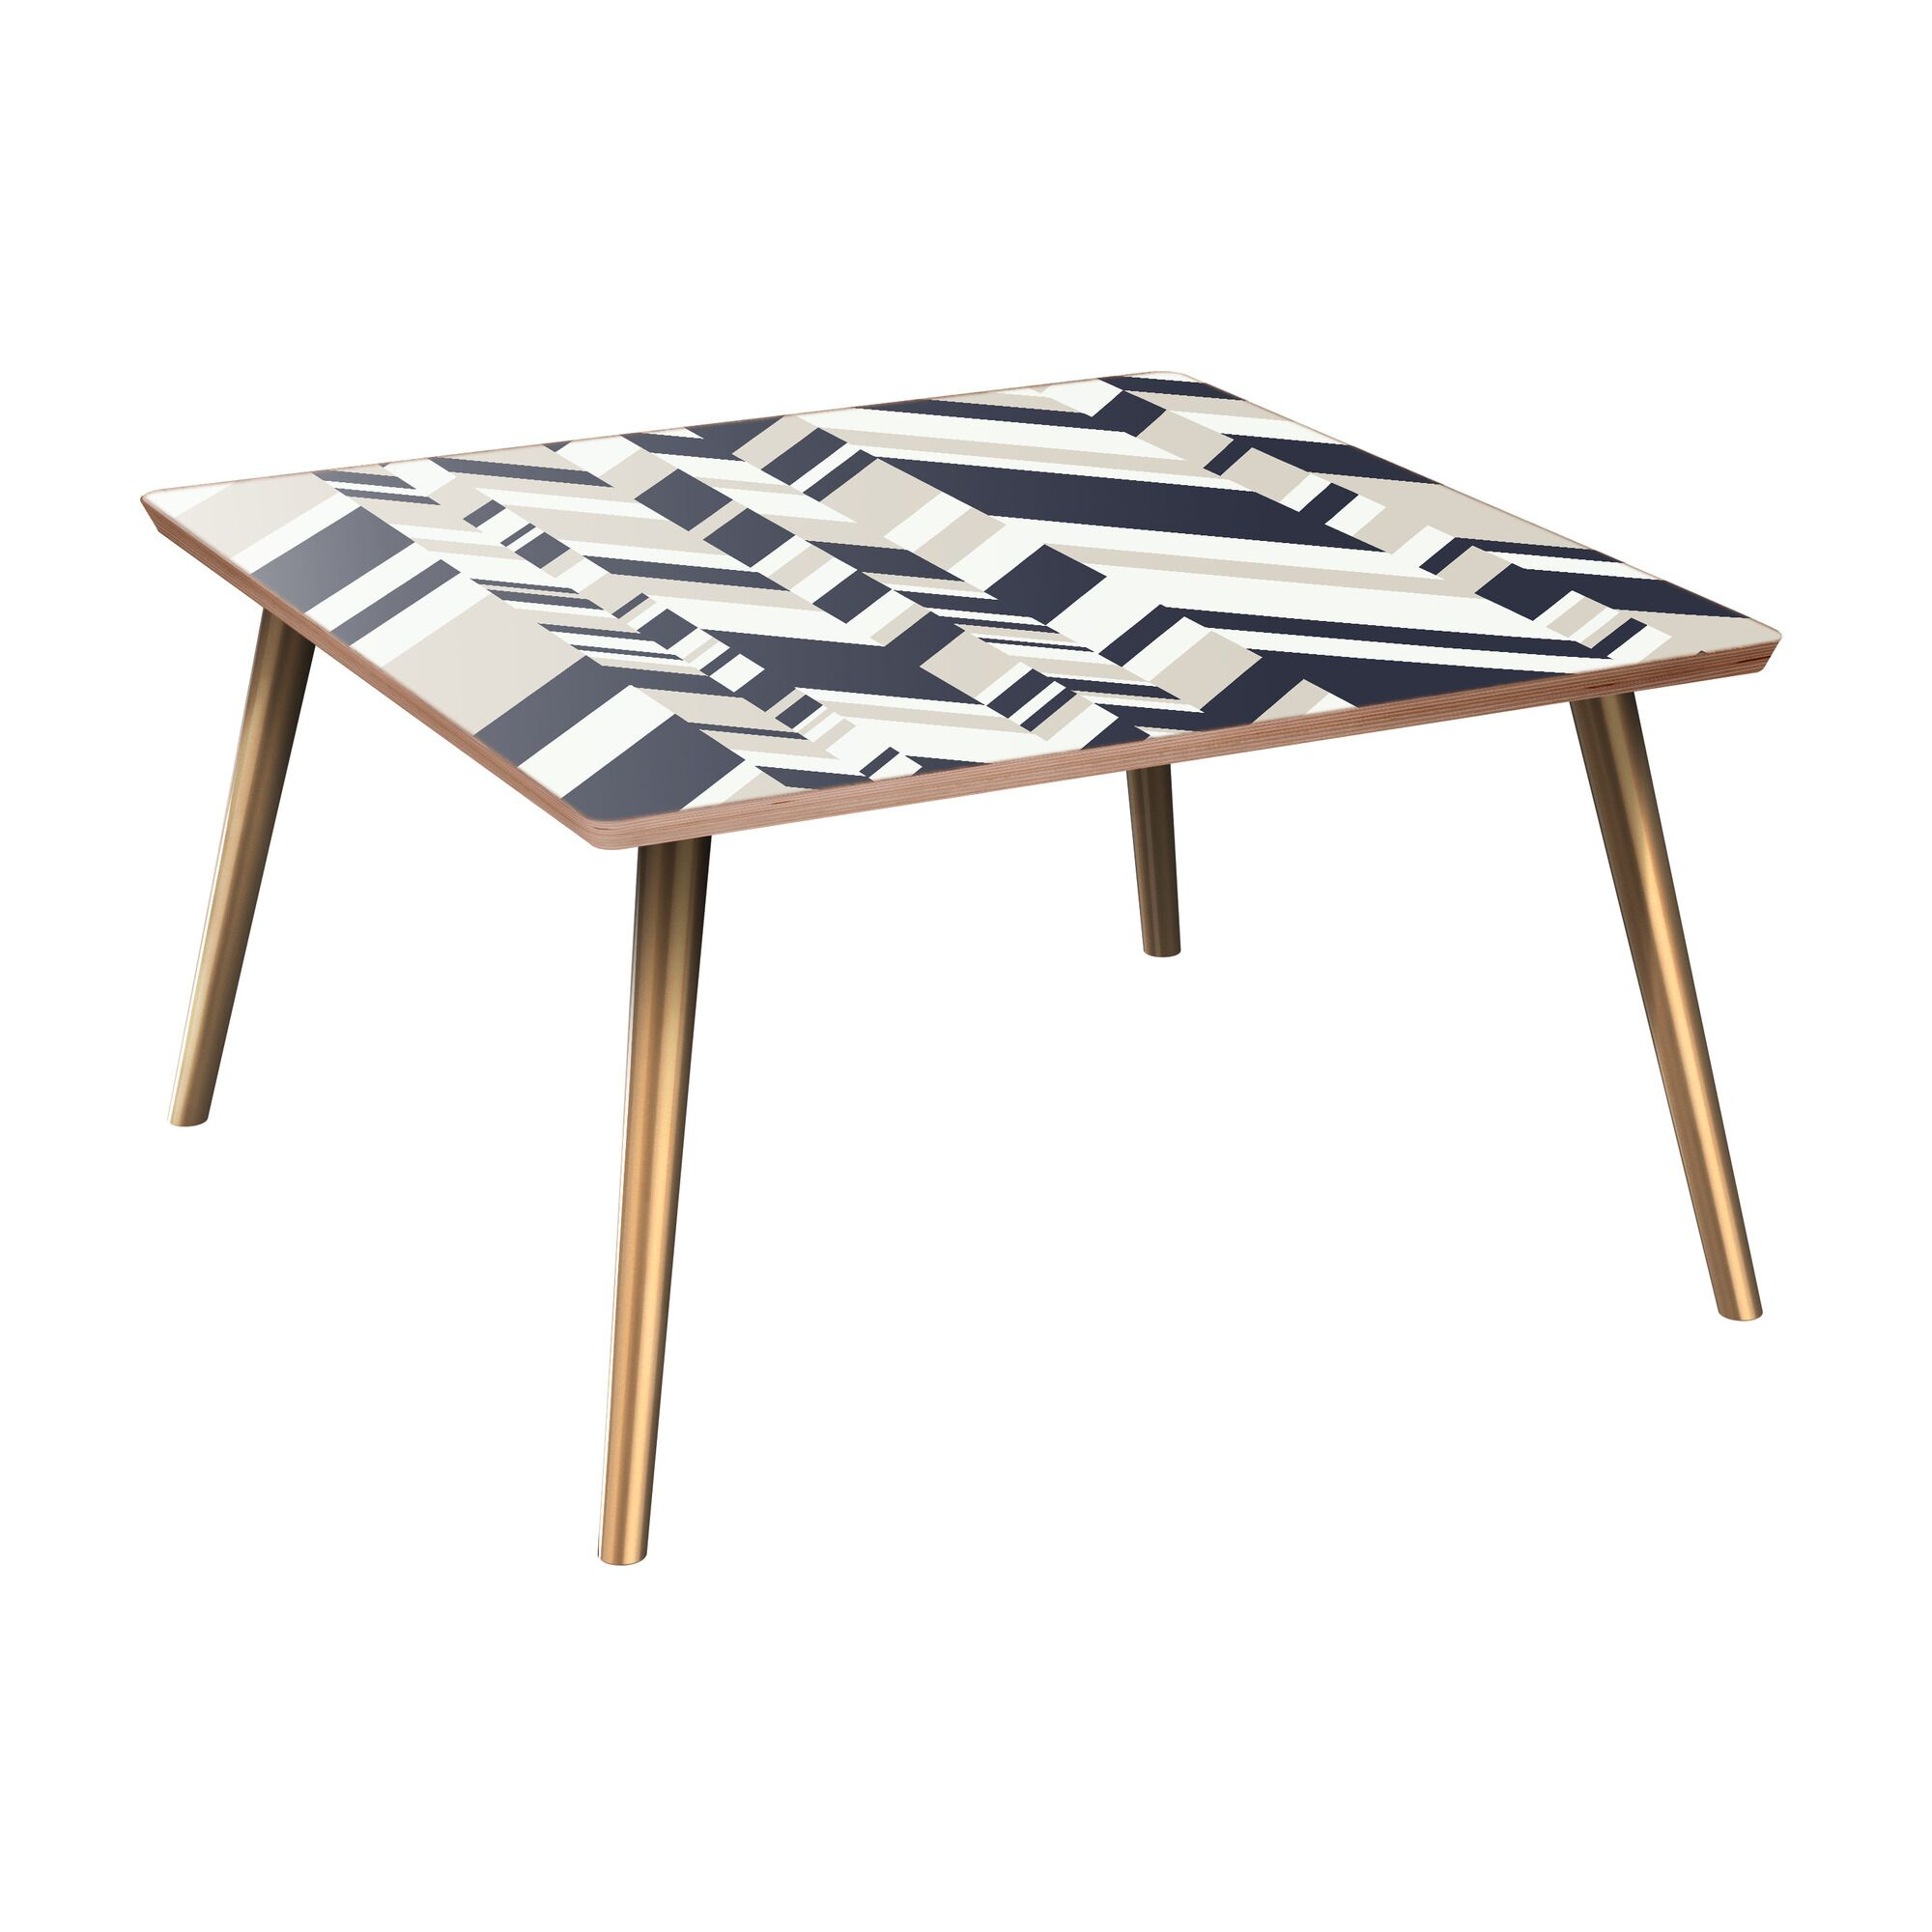 Jovan Coffee Table Table Base Color: Brass, Table Top Color: Walnut